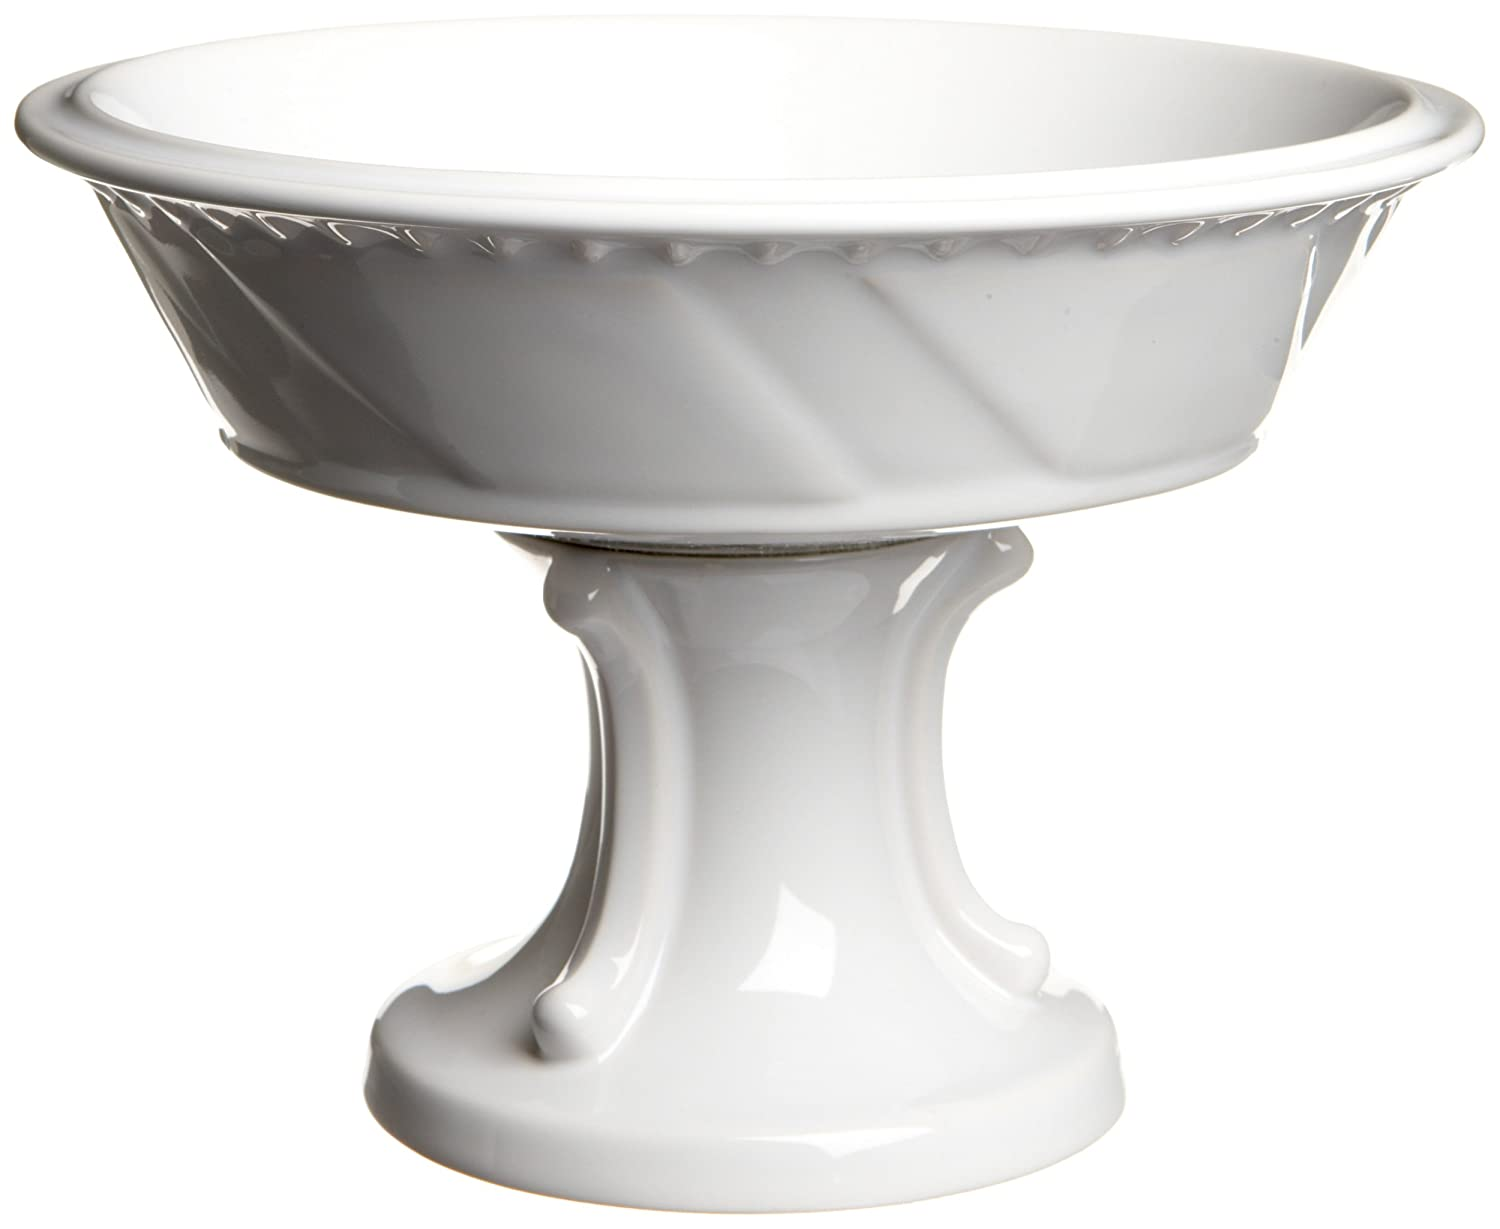 Rosanna La Pâtisserie Medium Footed Bowl Rosanna Imports Inc 43046